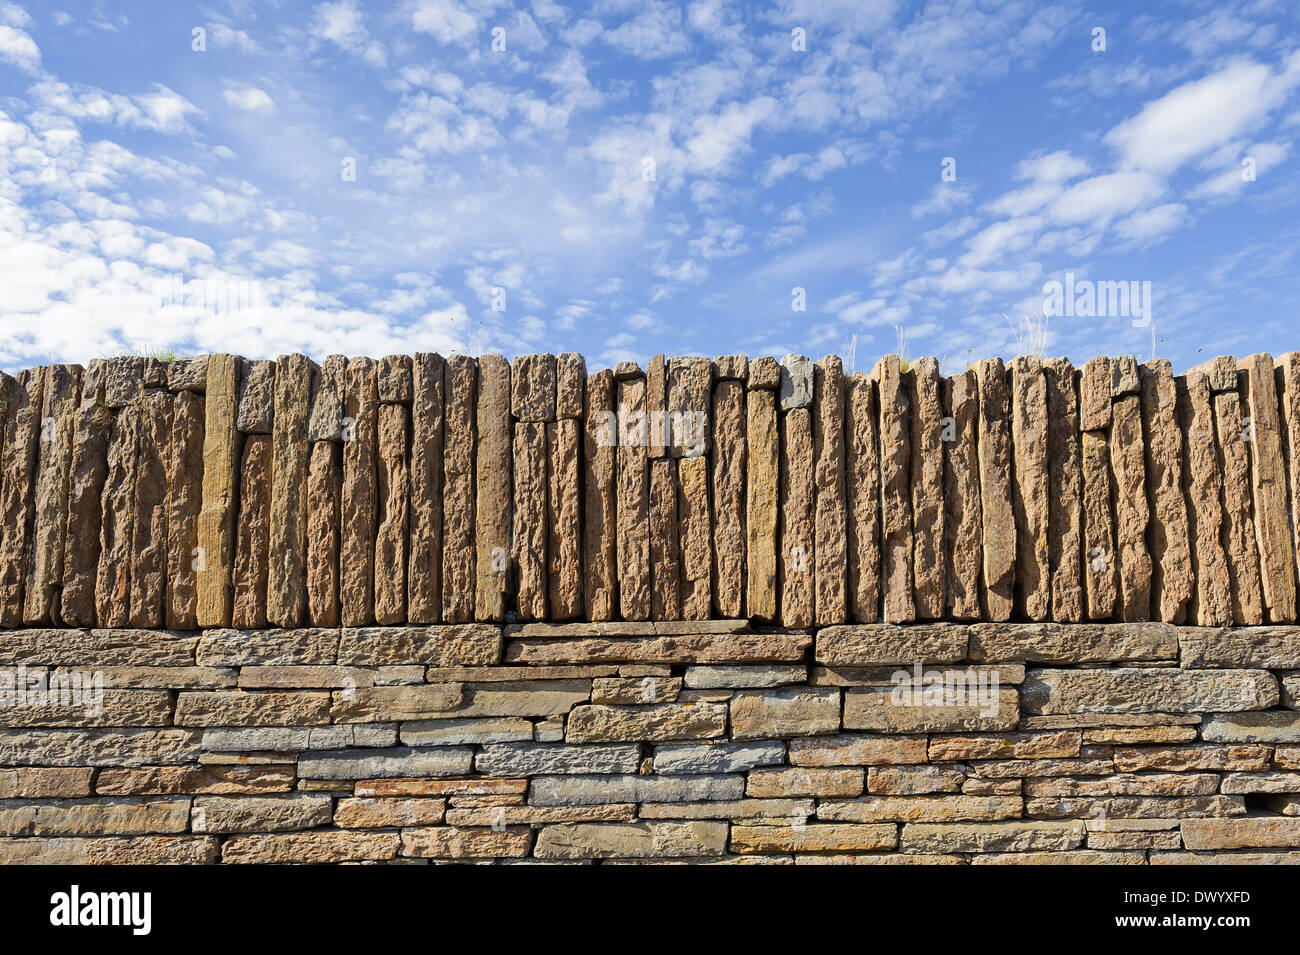 A new stone wall built with Caithness flagstones, Scotland. - Stock Image